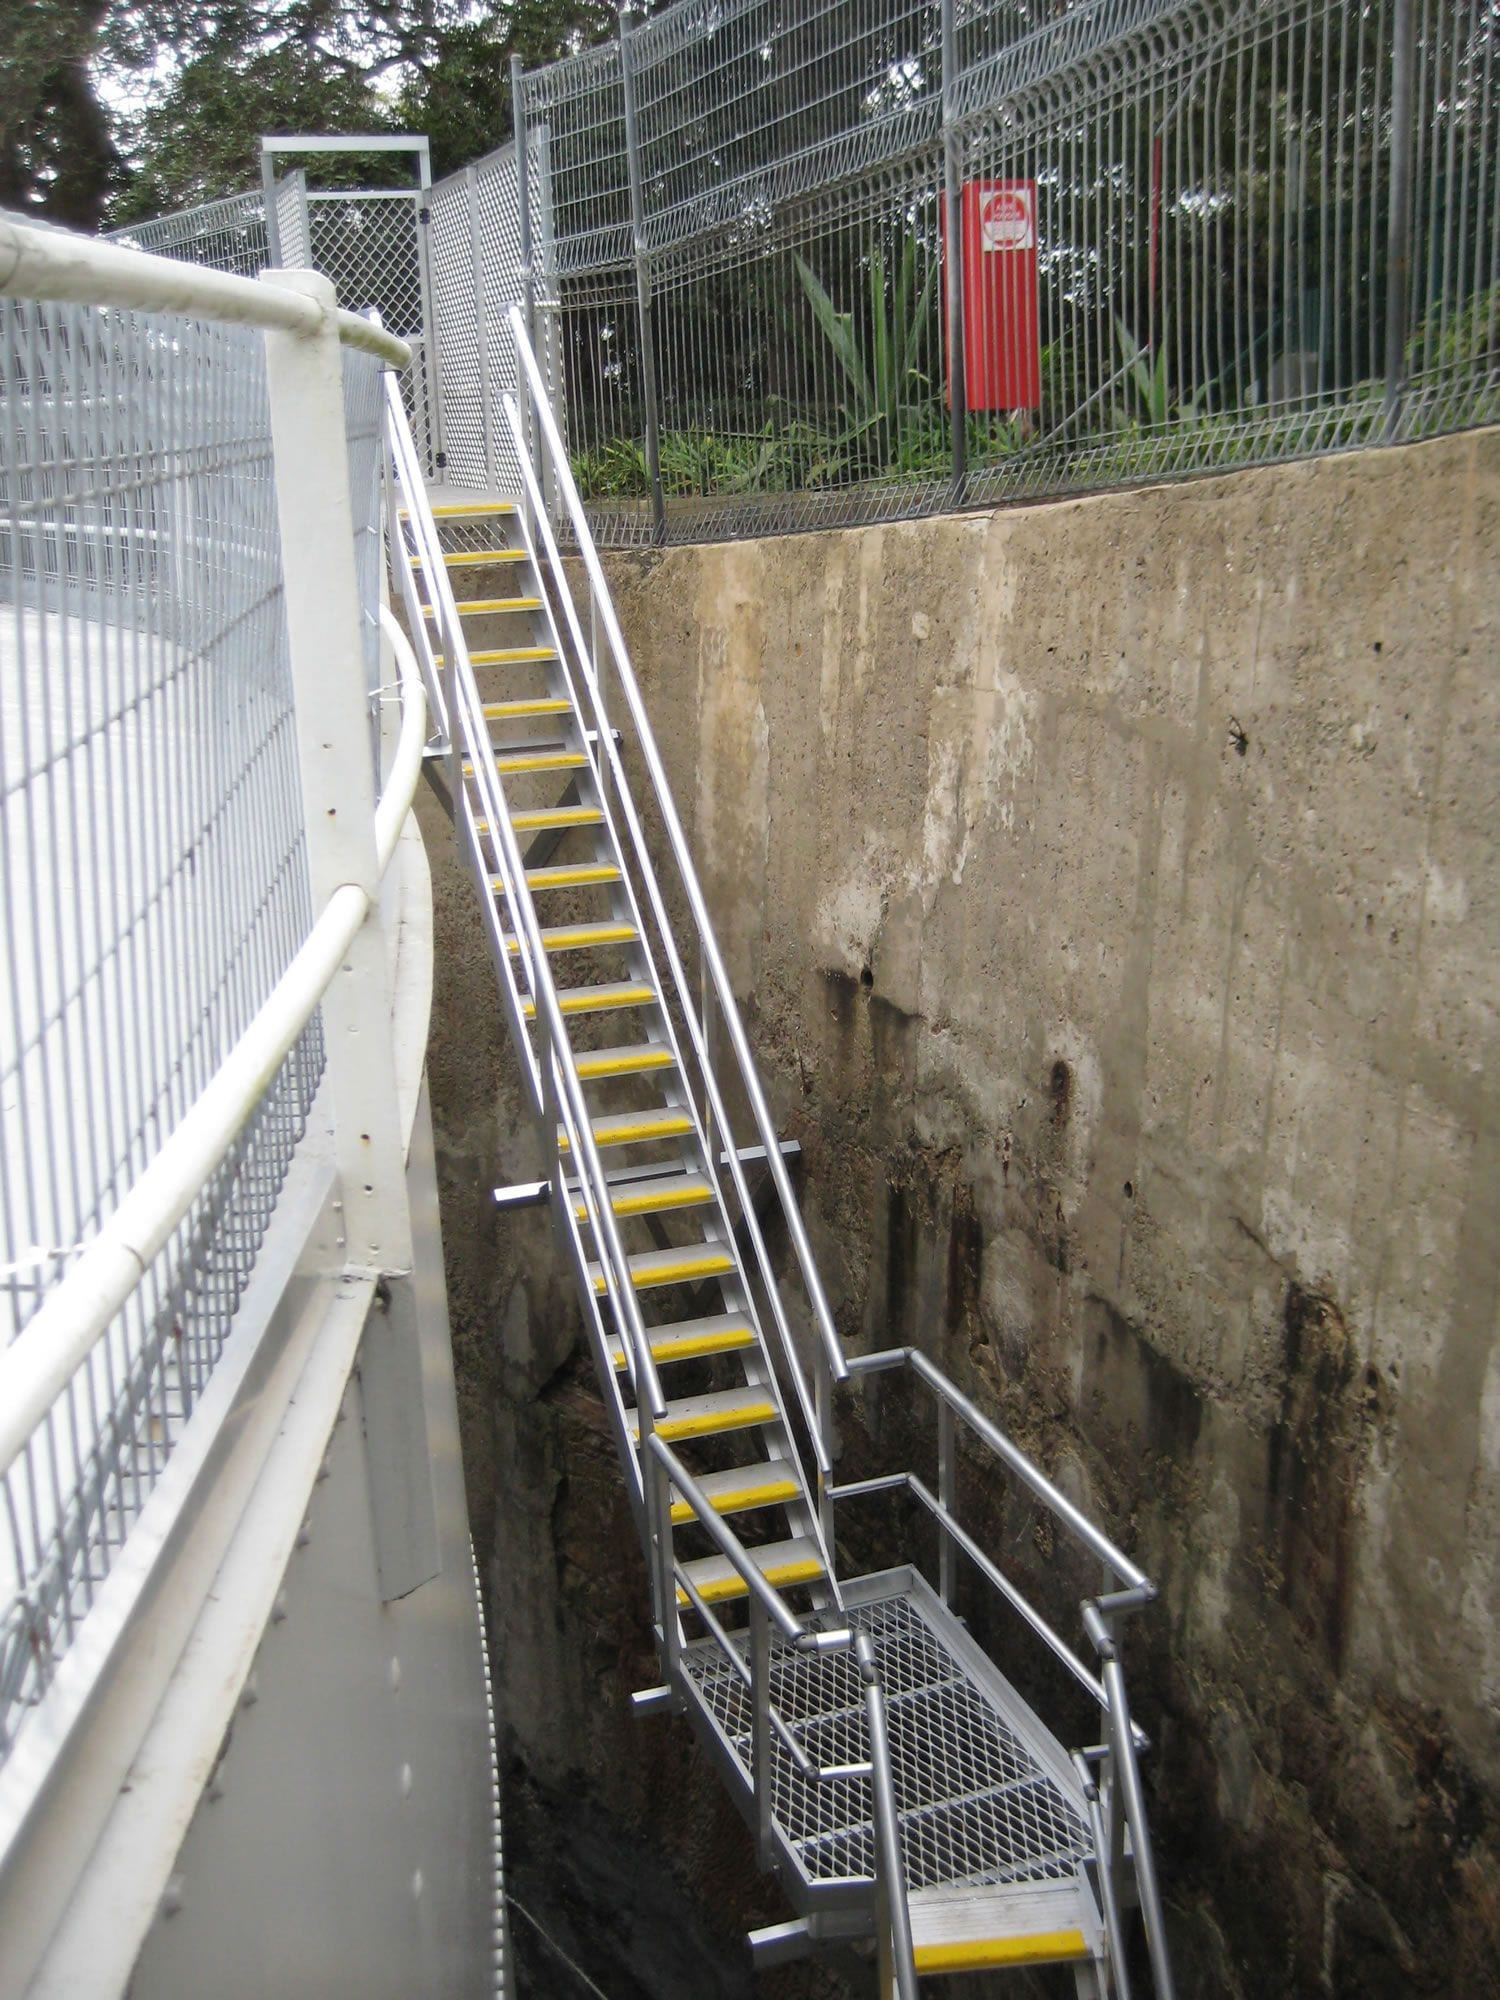 AnchorSafe Australia stairway within a confined space